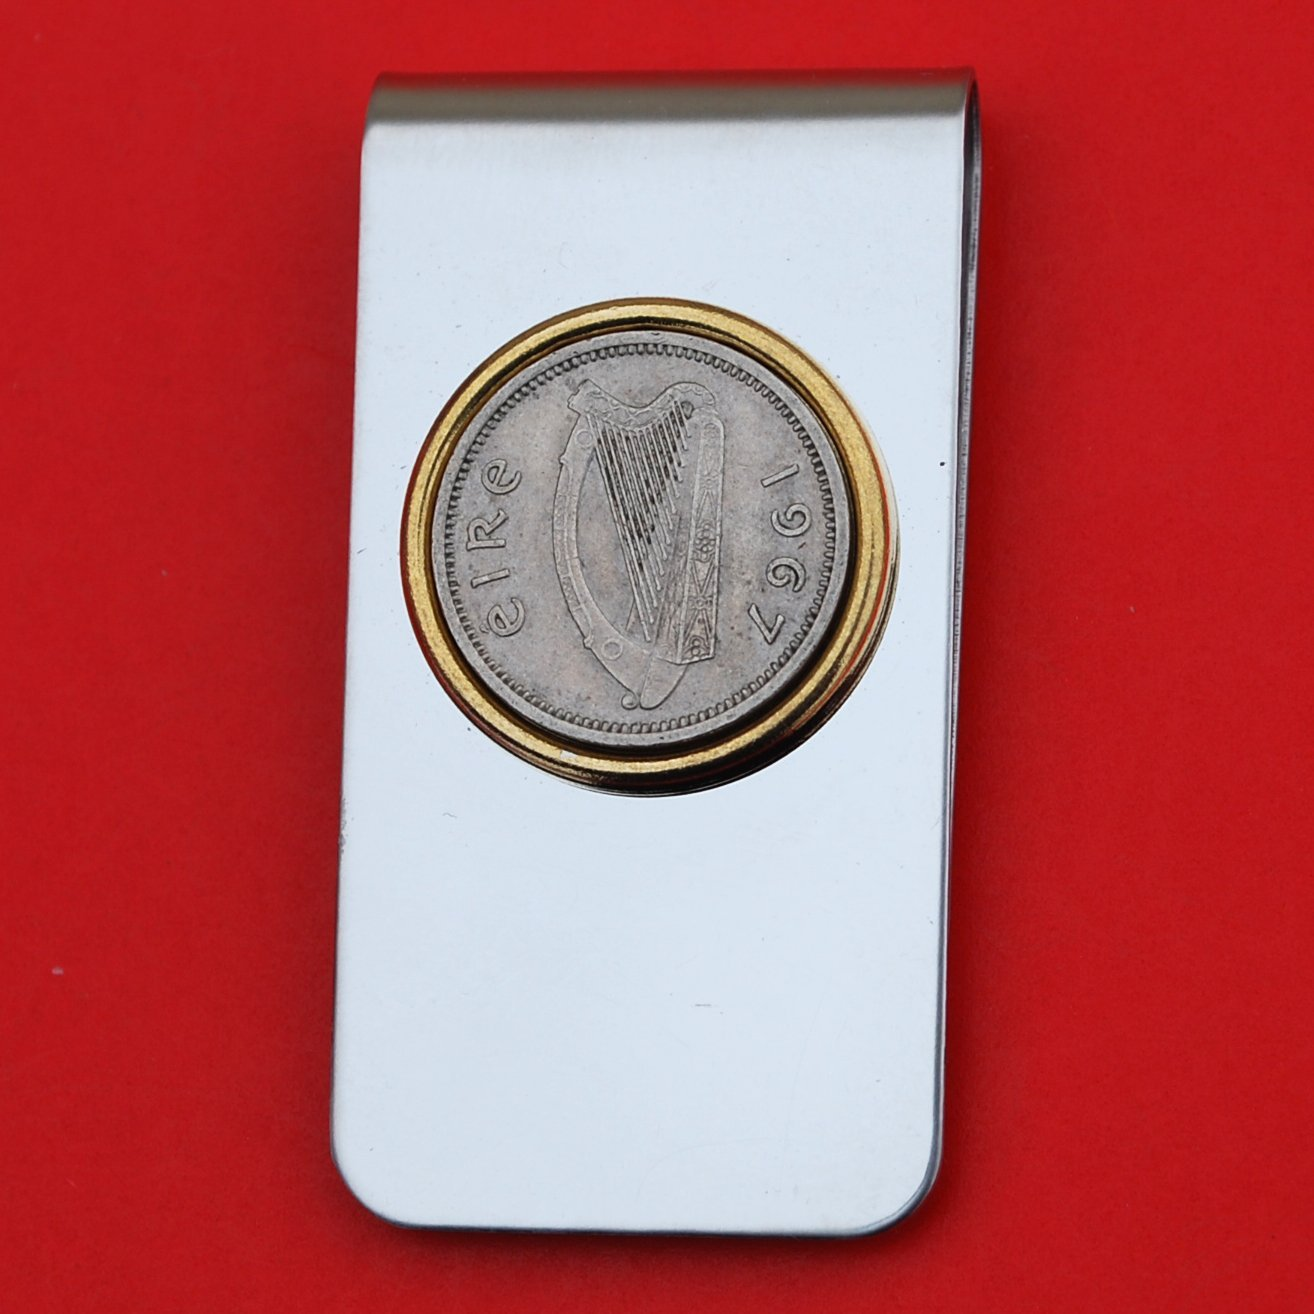 1967 Irish Ireland 3 Pence Harp Coin Gold Silver Two Toned Stainless Steel Money Clip New 71Q2Bqikq6-L